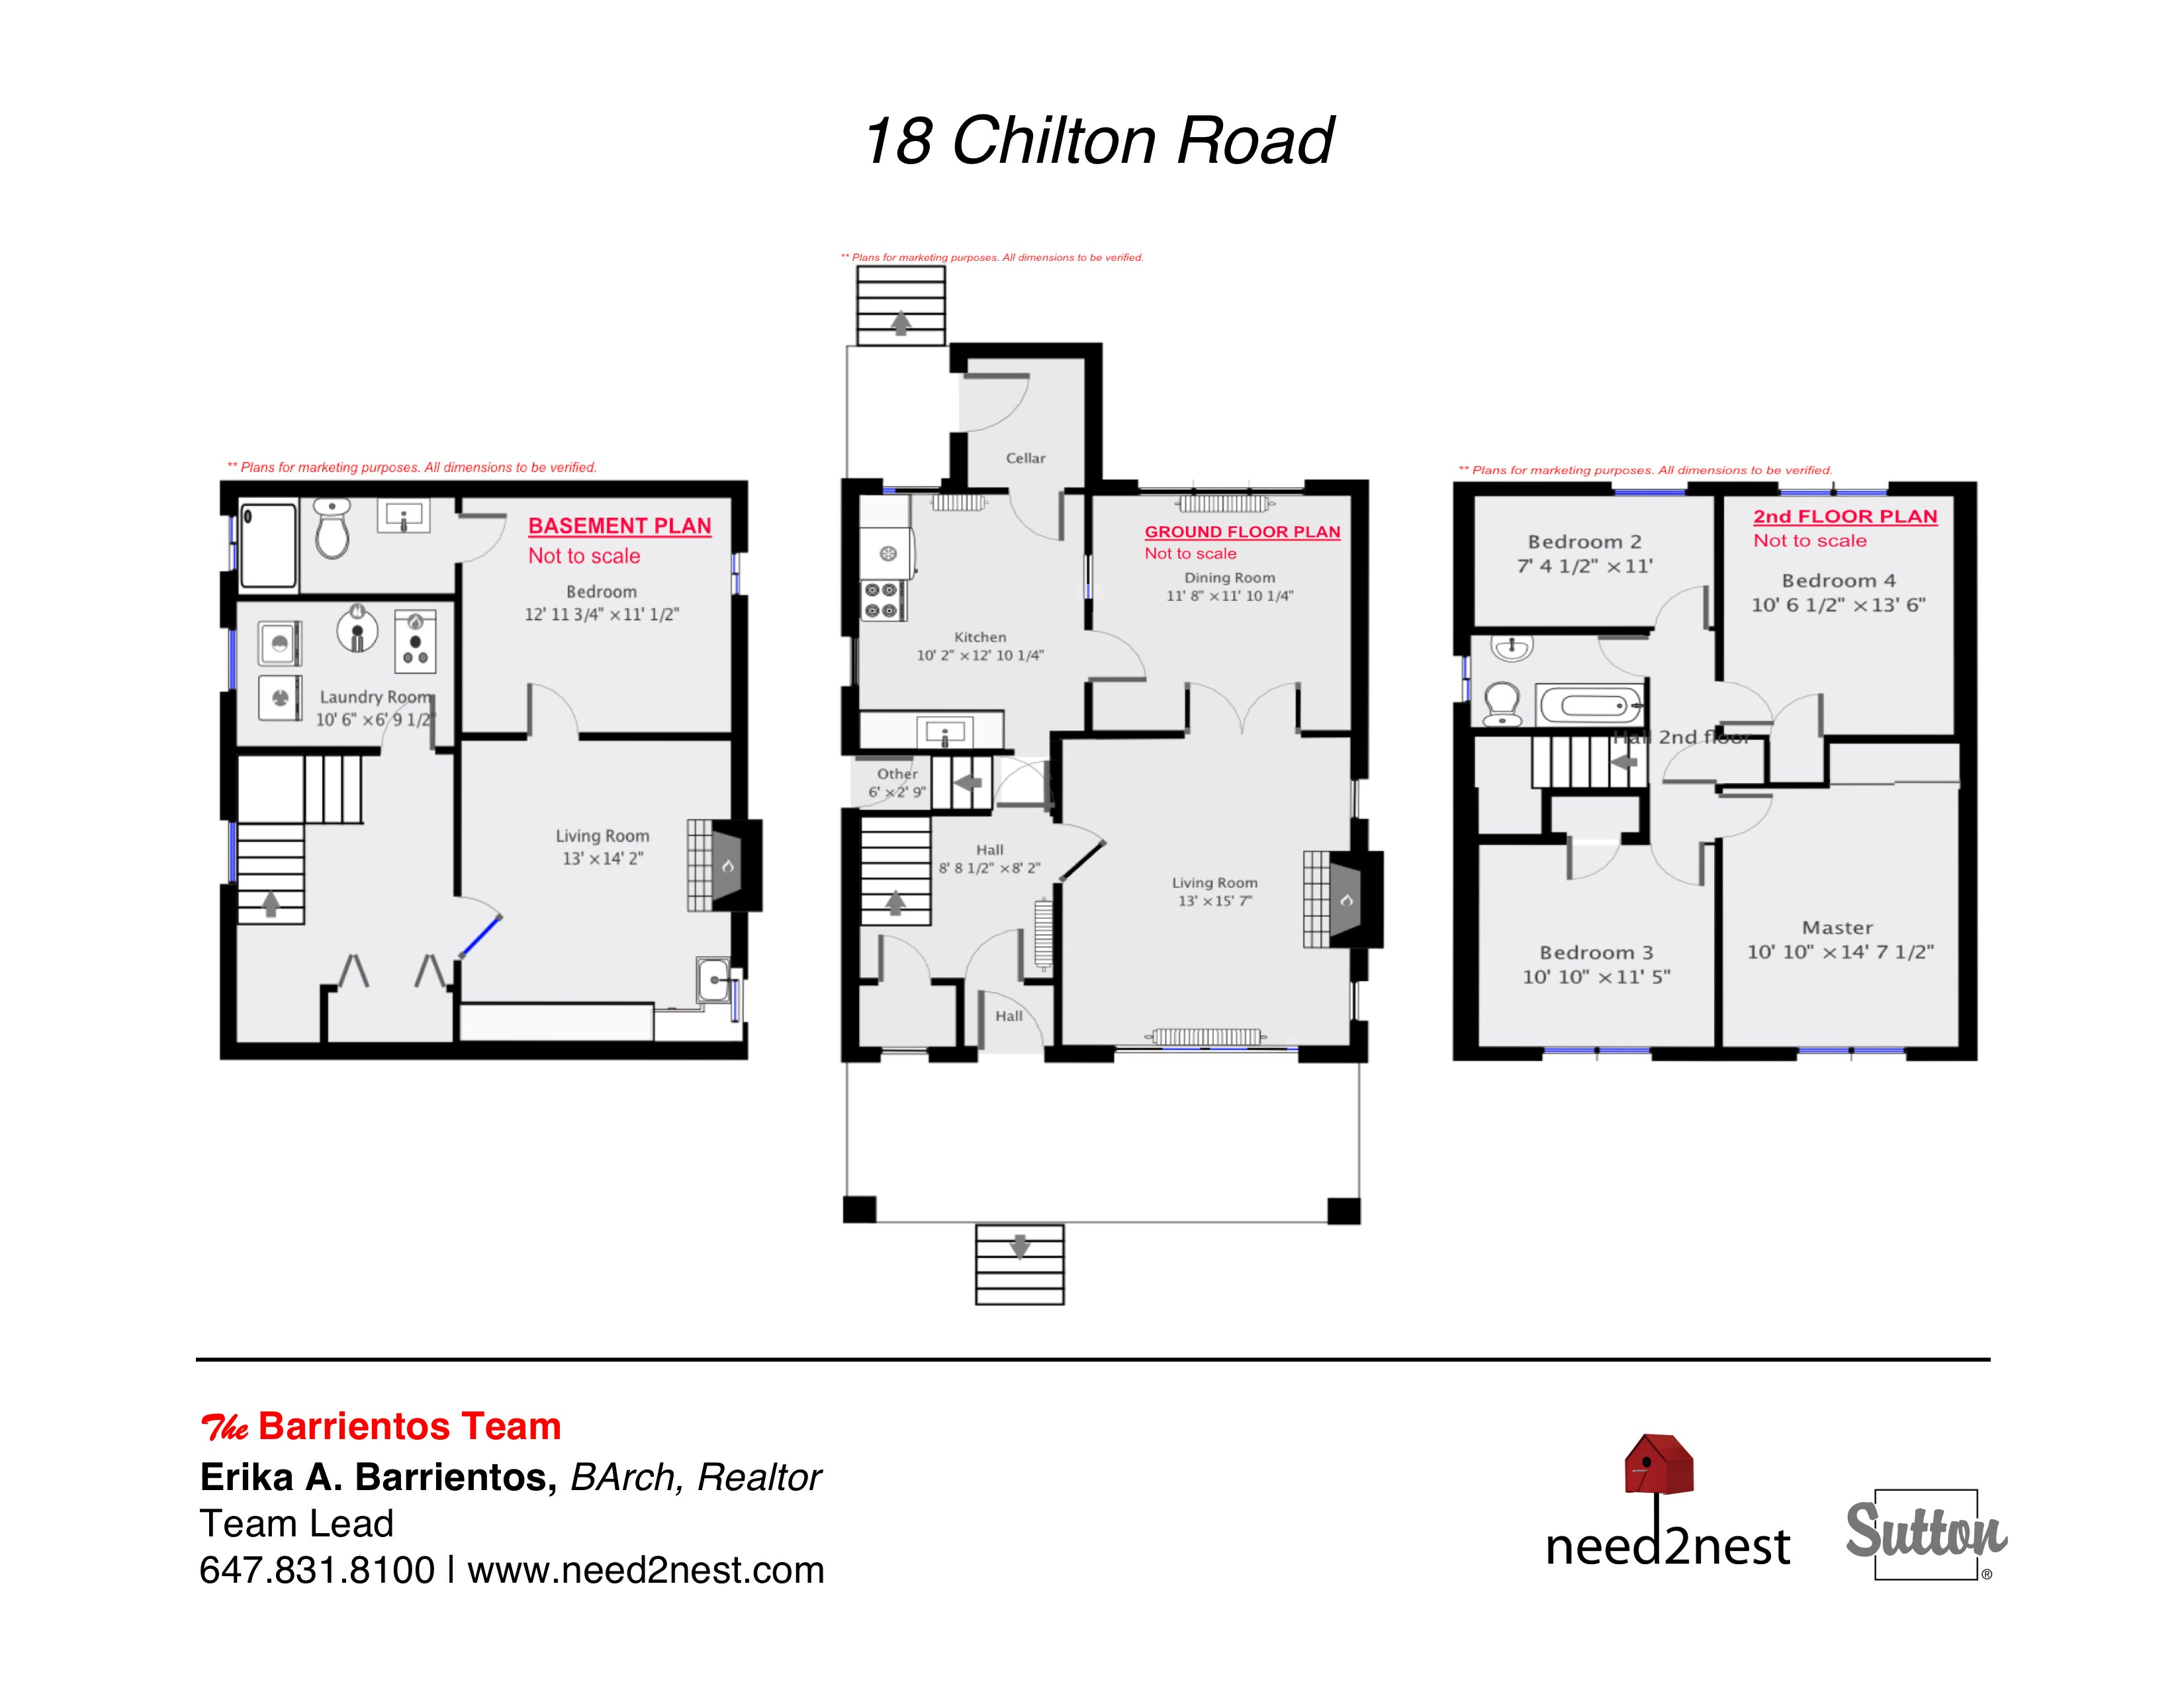 18 Chilton Road: Plans (Basement, Ground, Second)